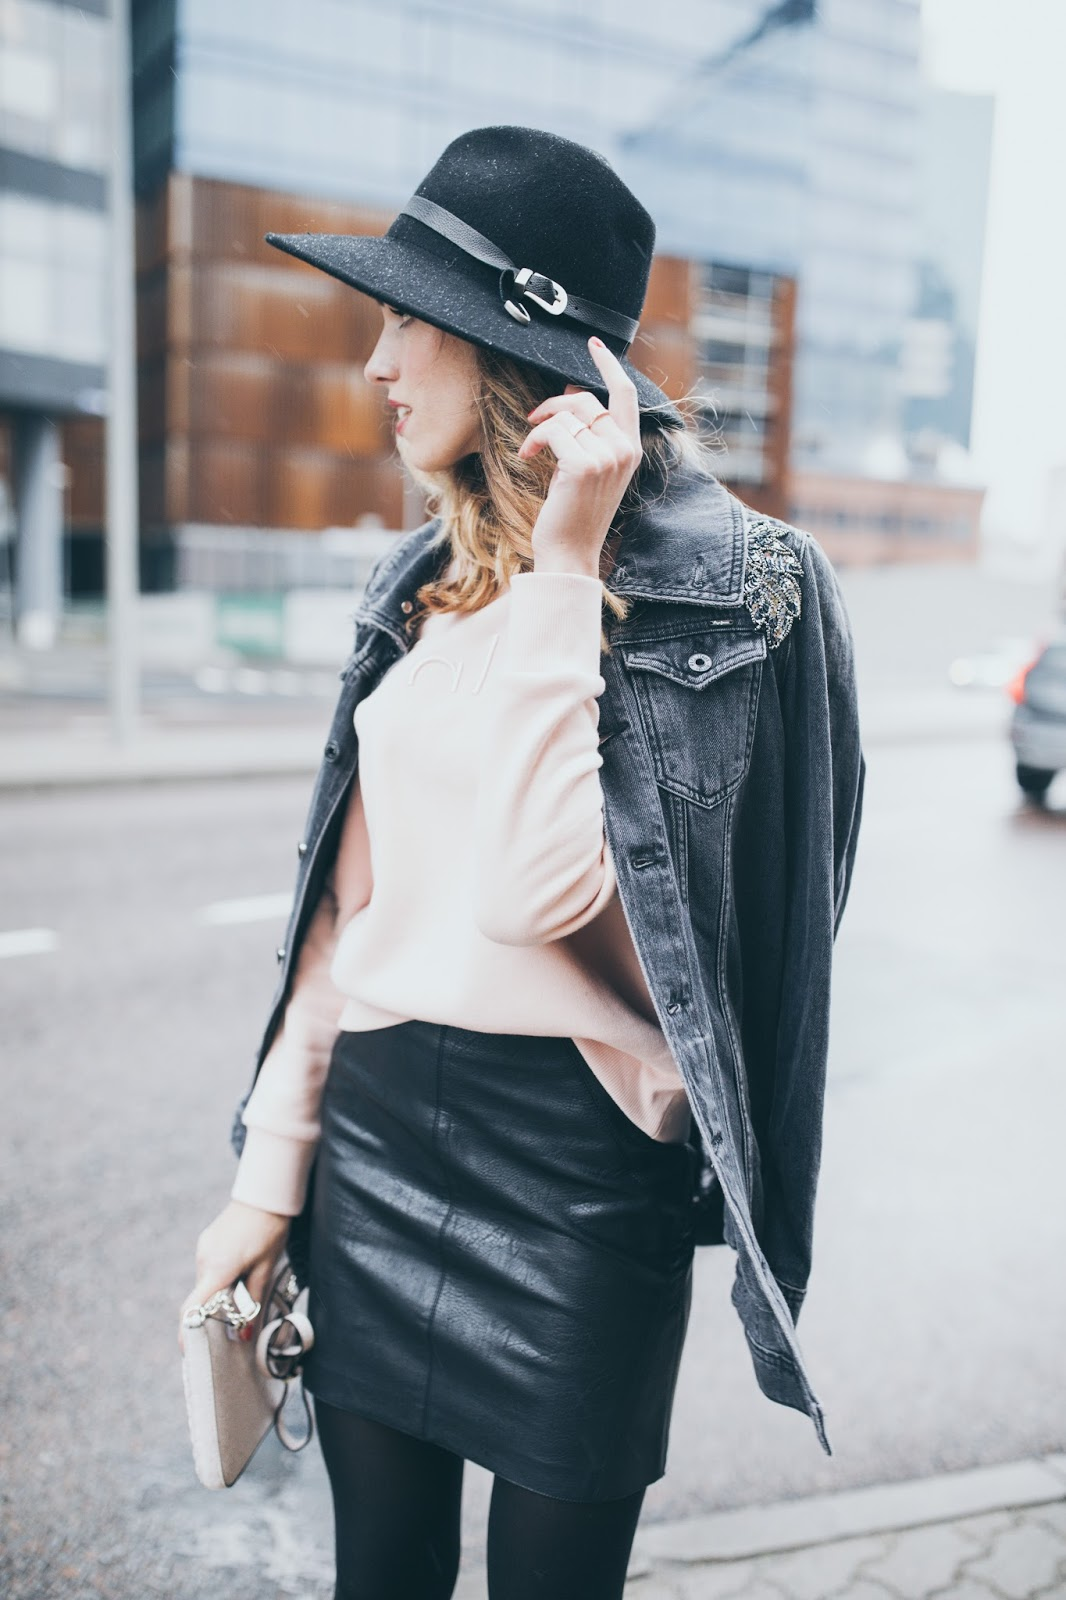 denim jacket leather skirt outfit fall